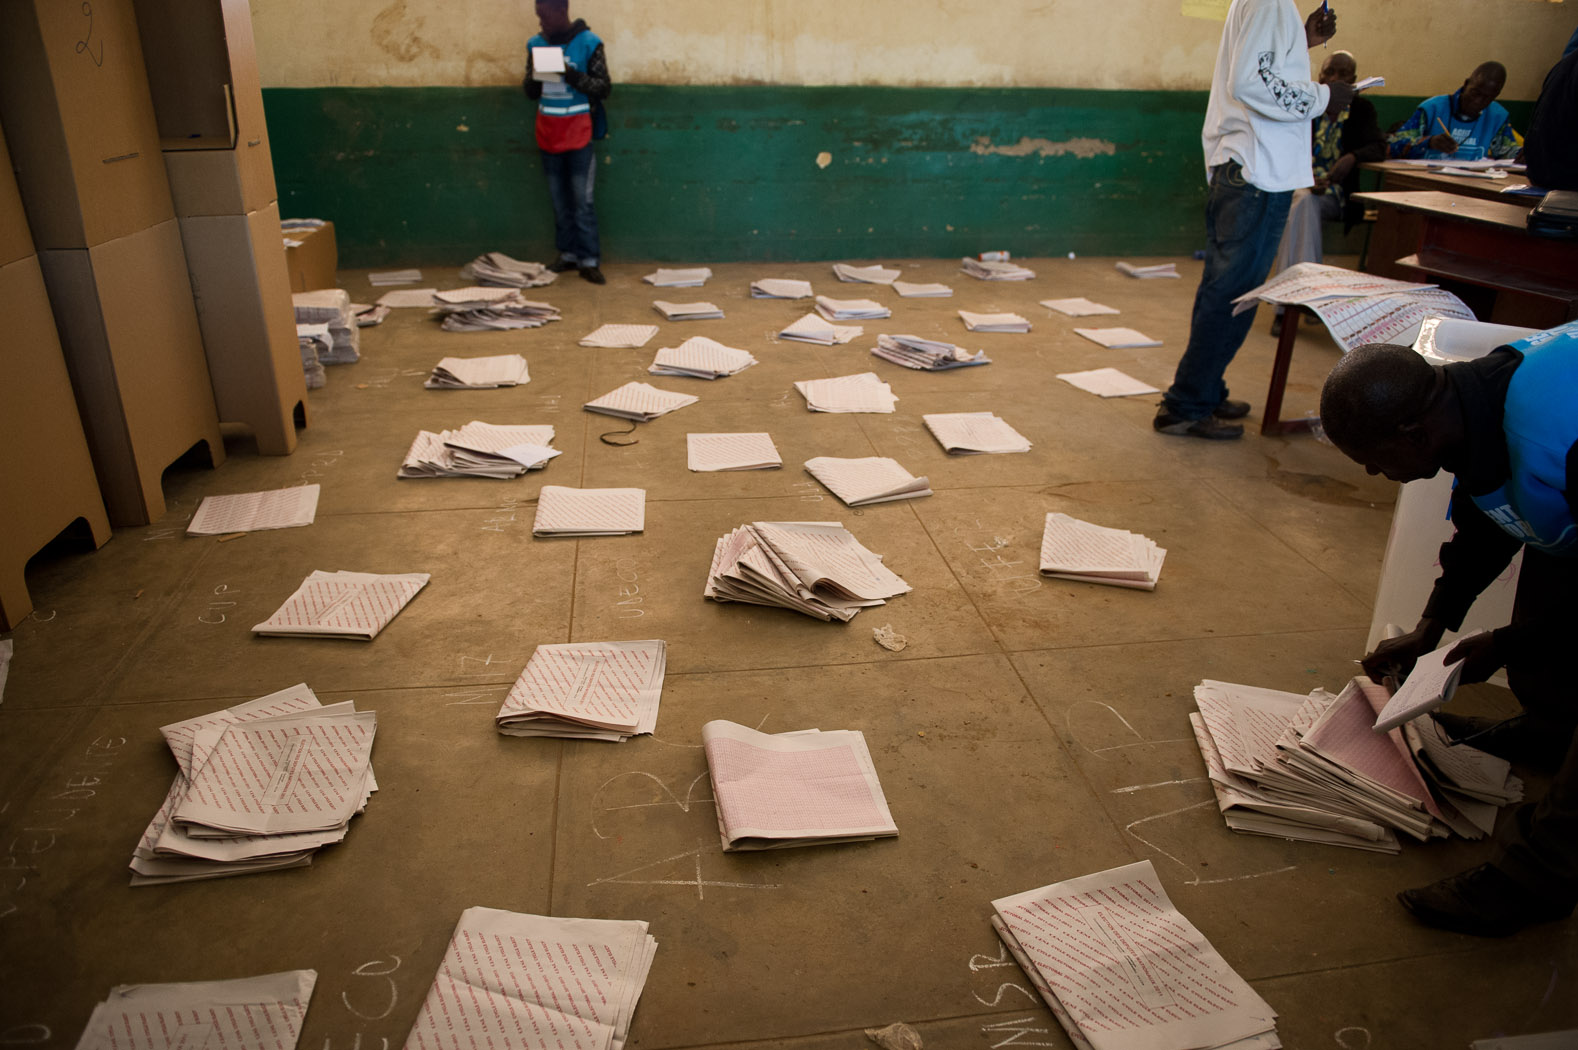 With 549 parliamentary candidates presenting in Lubumbashi, piles were made of votes cast for each candidate.